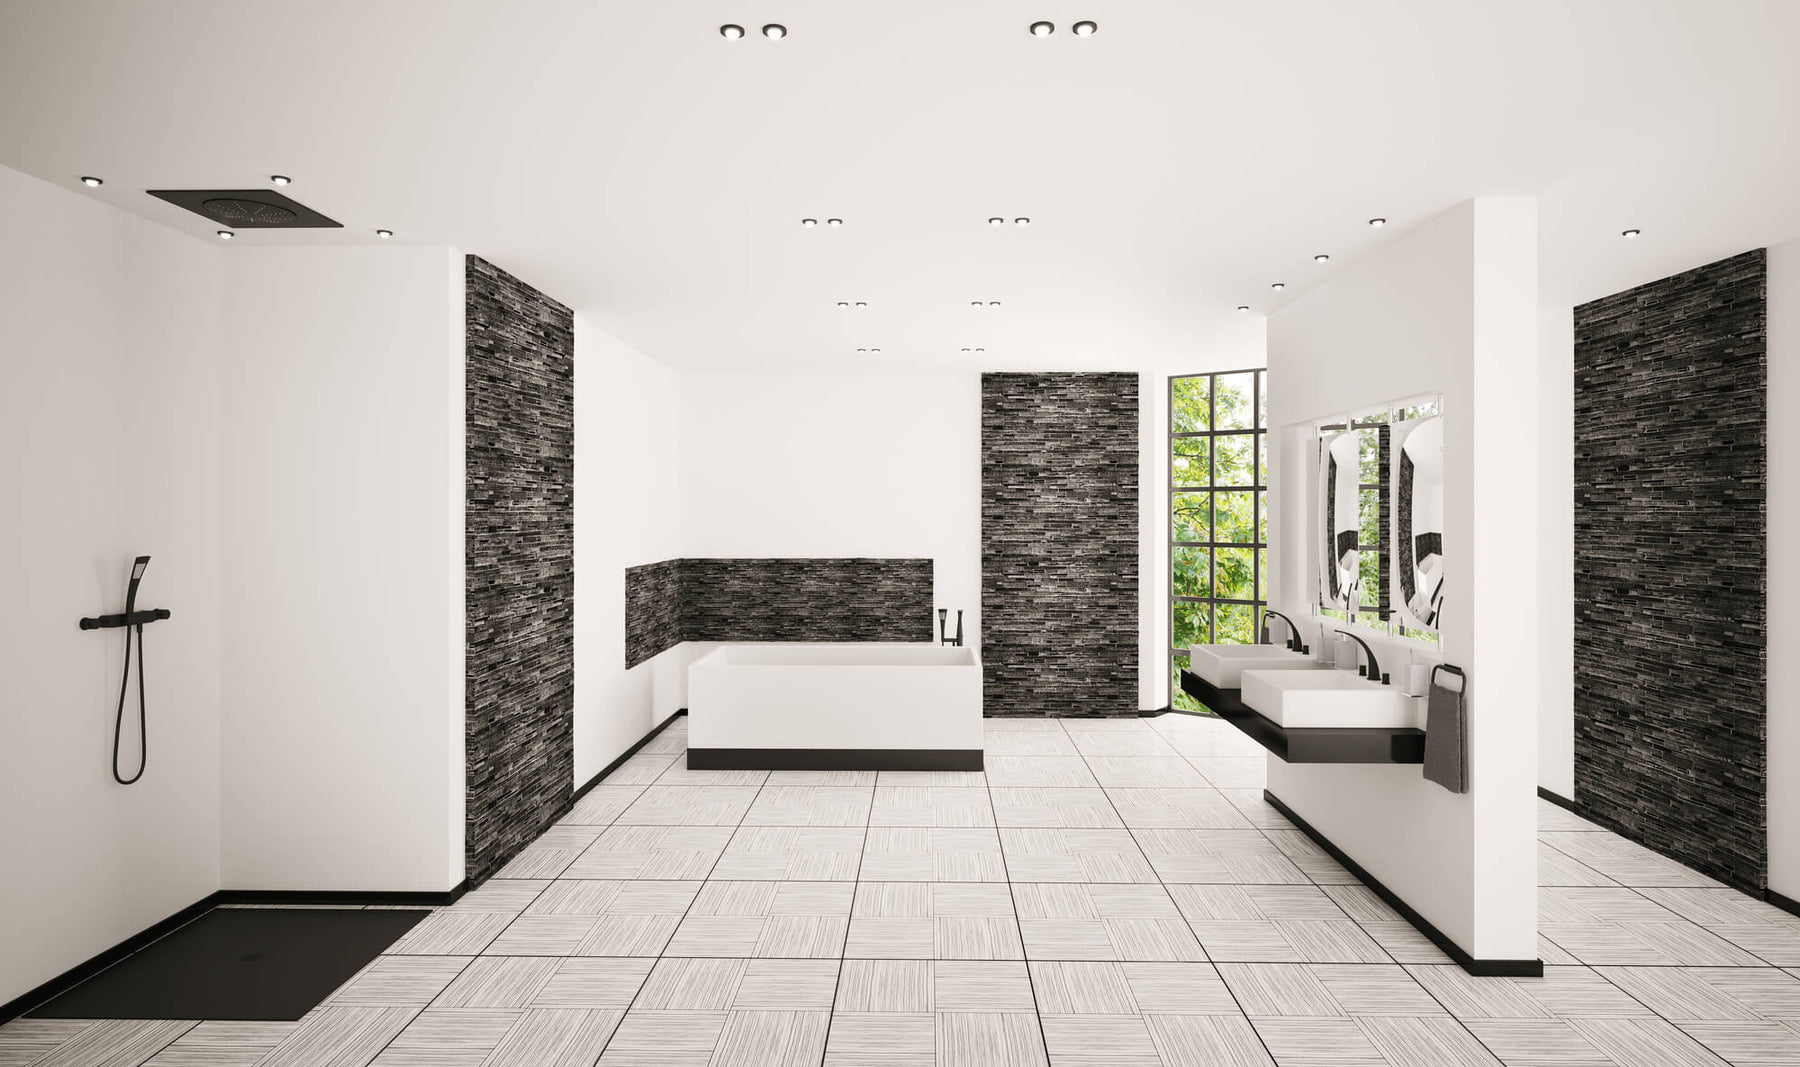 Tile Finish: Making the Right Choice for Your Floors and Walls